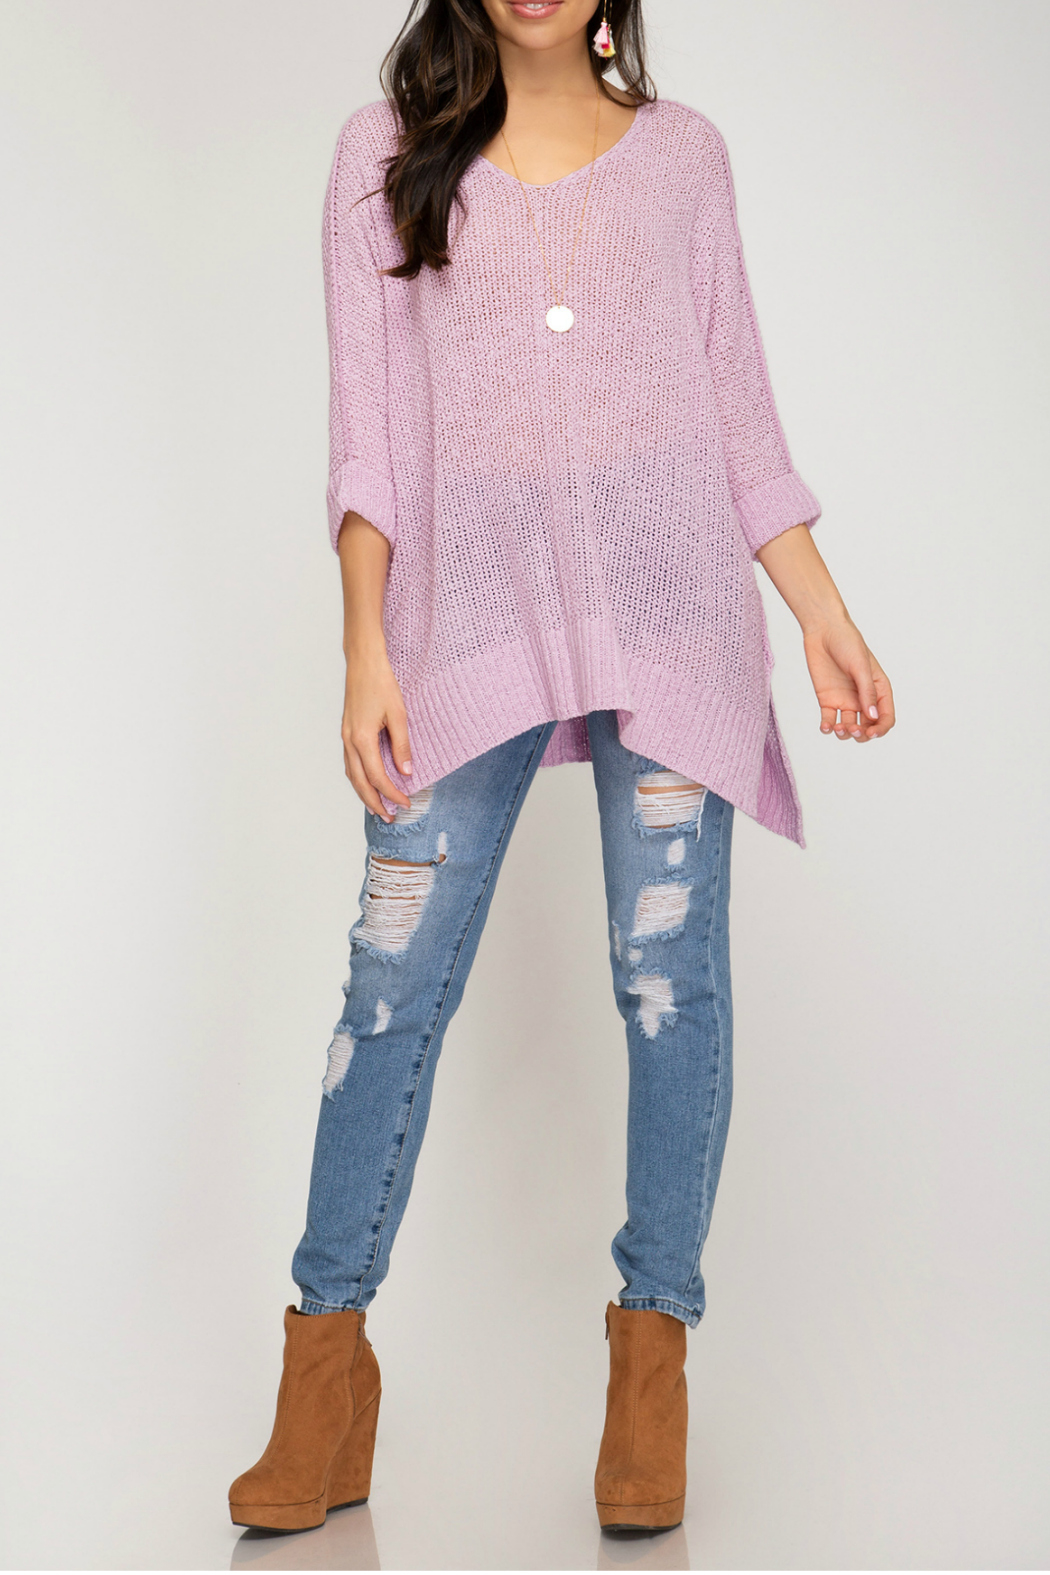 She + Sky HI LOW KNIT SWEATER TOP - Front Full Image